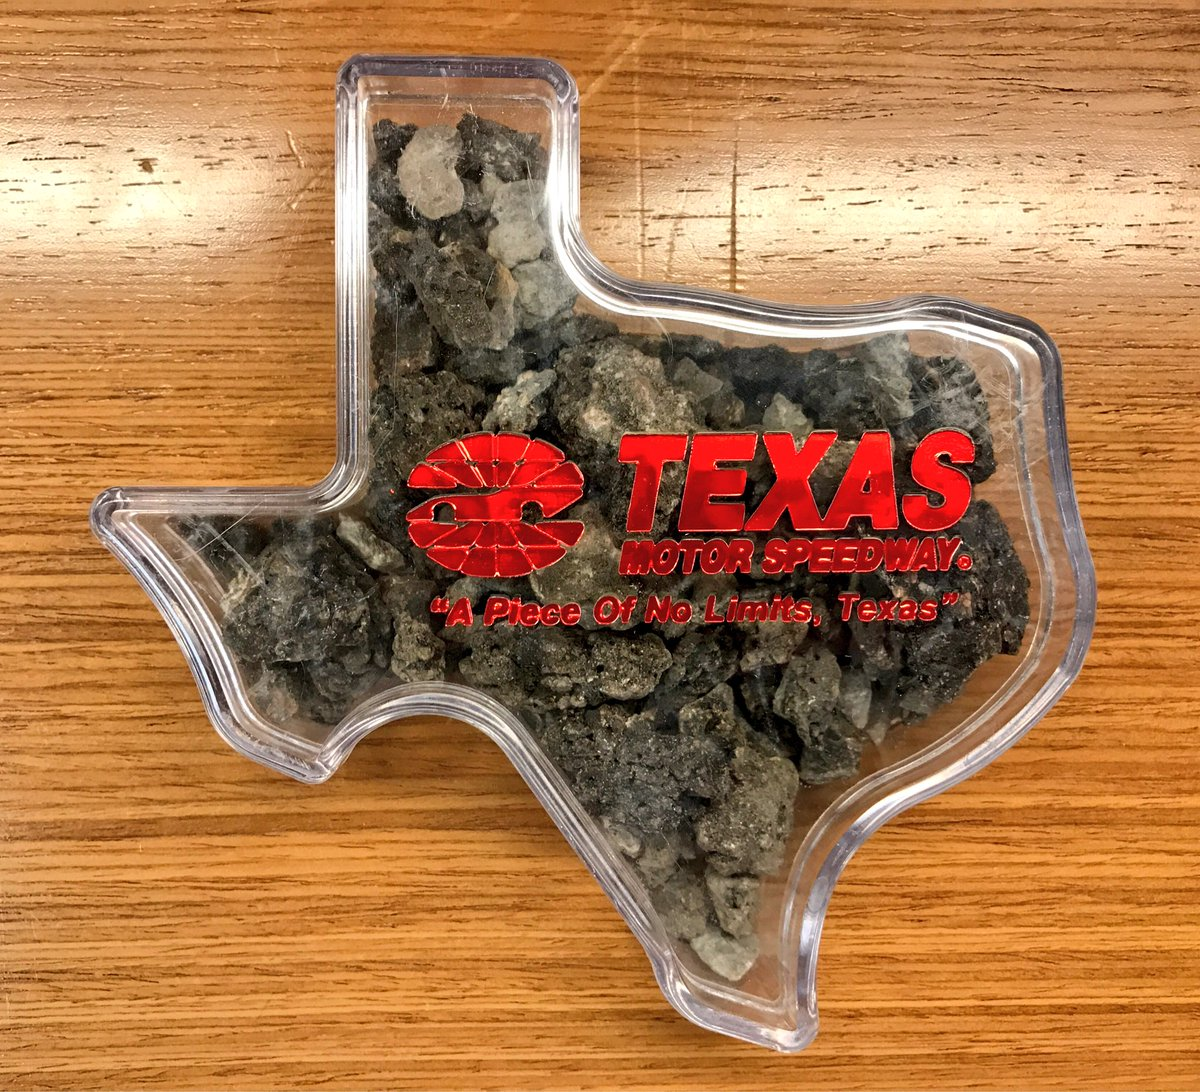 So who thinks we should giveaway this Texas shaped box with some pices of our old track surface? https://t.co/8Aowm1kZEL